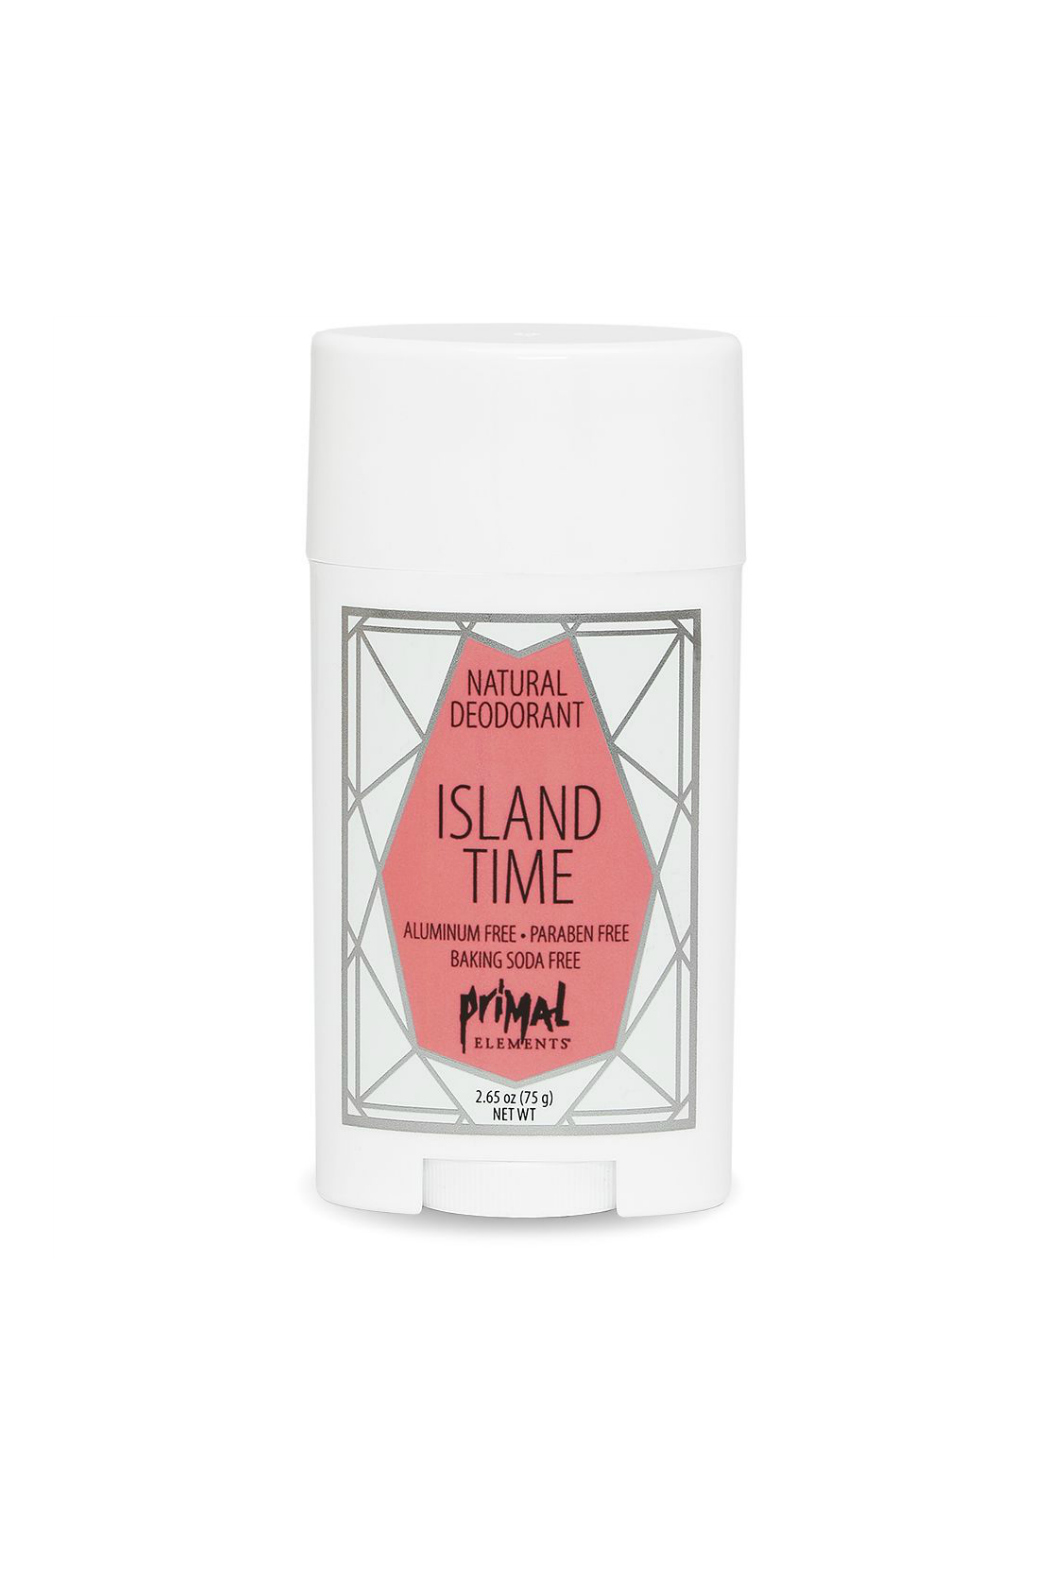 Primal Elements ALL NATURAL DEODORANT ISLAND TIME - Main Image